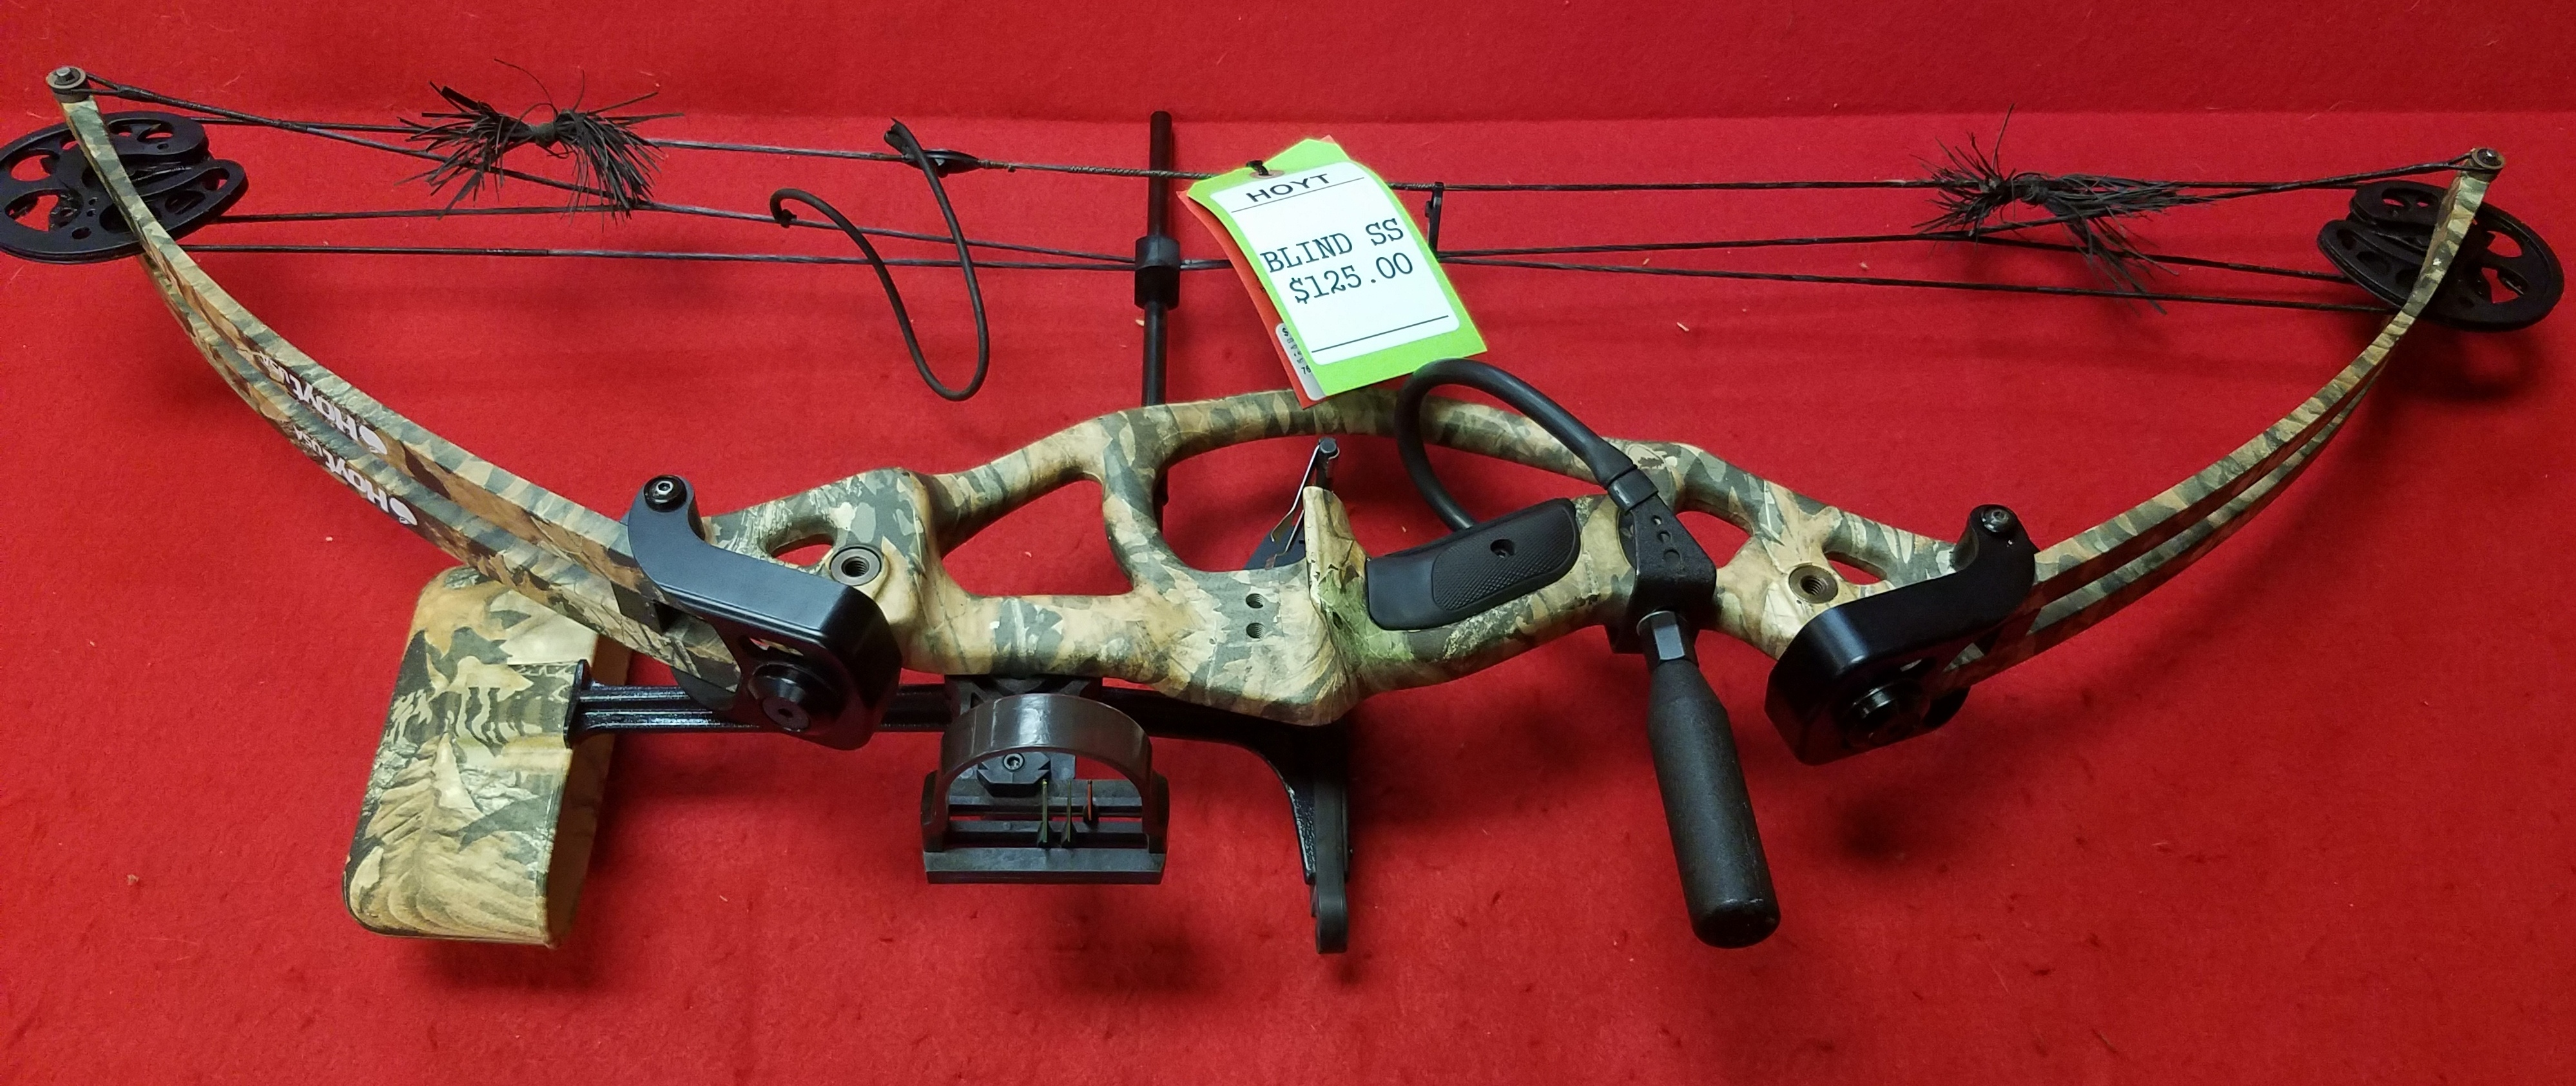 HOYT - MT SPORT RH COMPOUND BOW